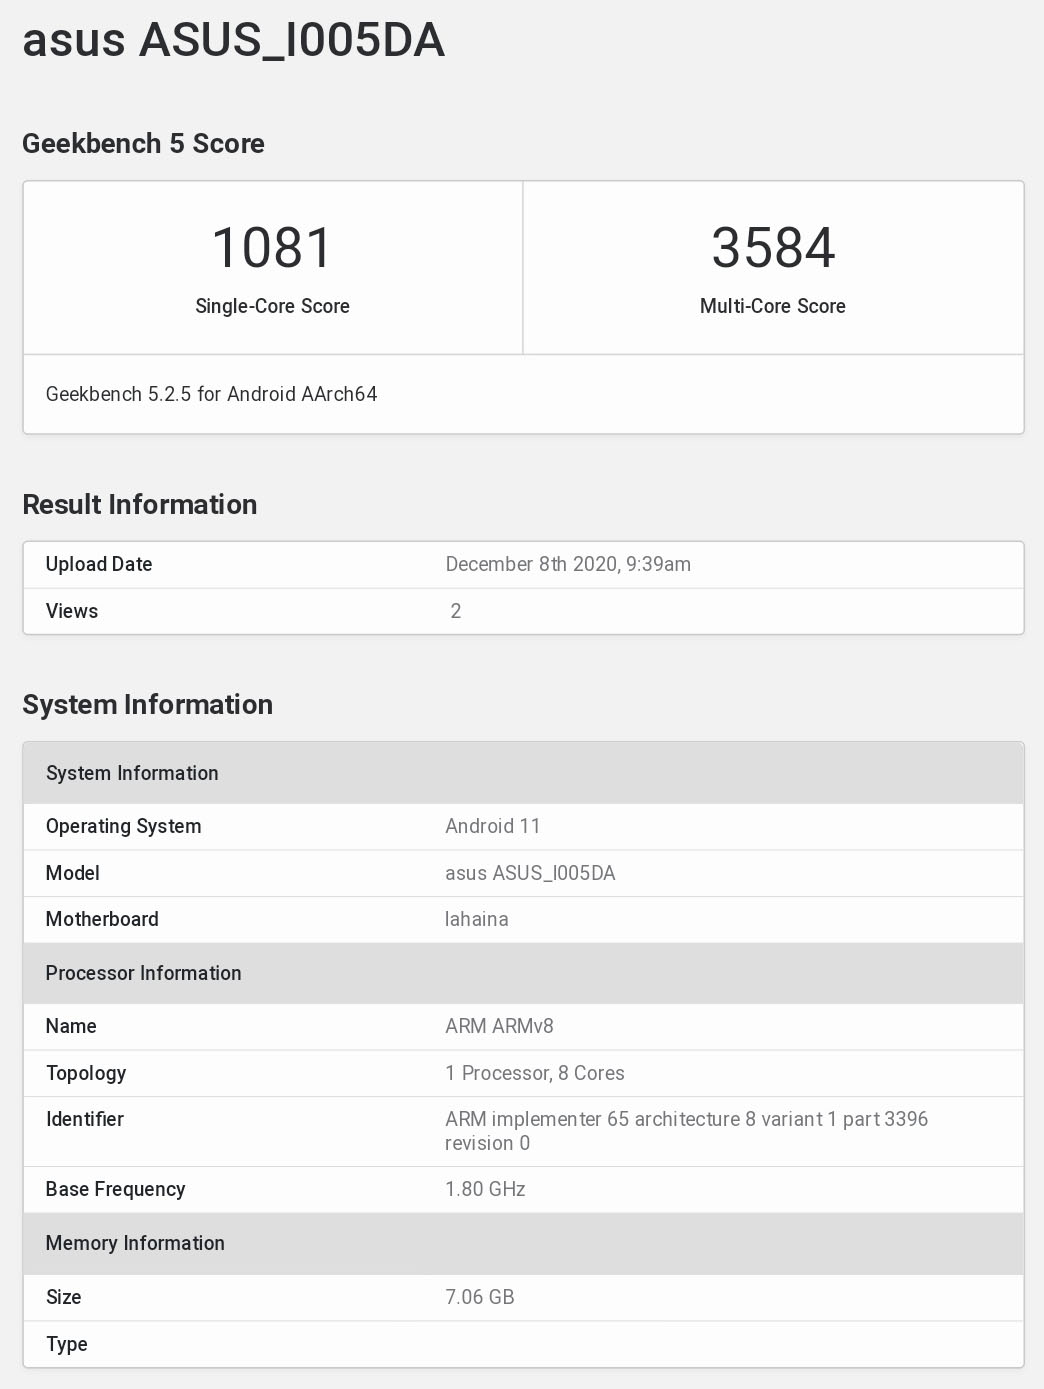 Asus ROG 4 (ASUS_I005DA) spotted on Geekbench